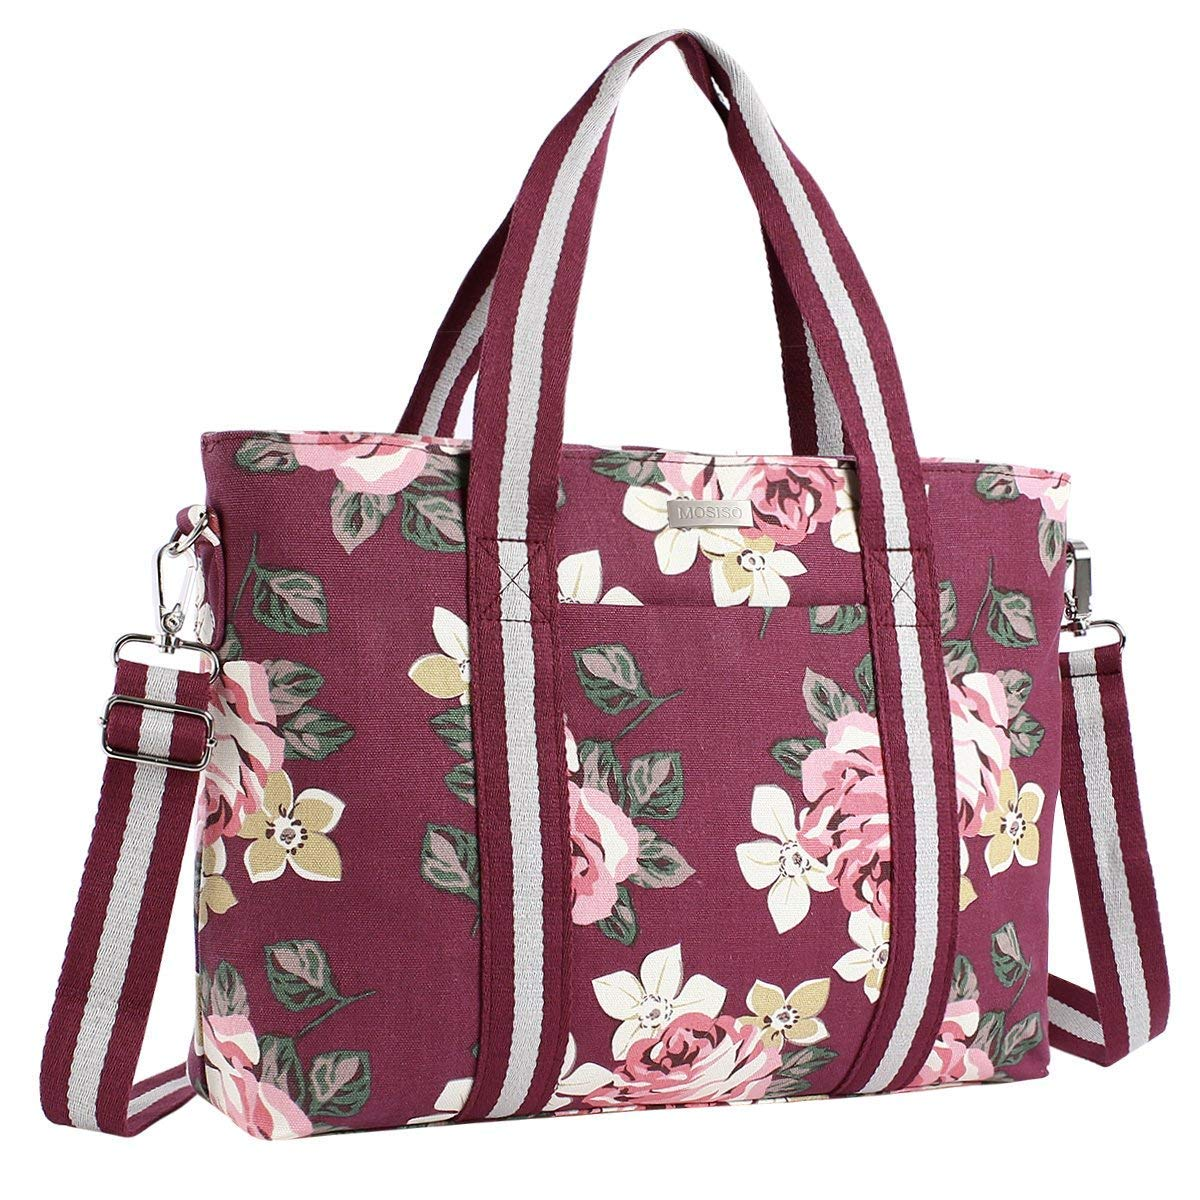 Mosiso Laptop Tote Bag (Up to 15.6 Inch), Canvas Classic Rose Multifunctional Work Travel Shopping Duffel Carrying Shoulder Handbag Notebook, MacBook, Ultrabook Chromebook Computers, Gray OT-15-Canvas-Rose-Tote-GY